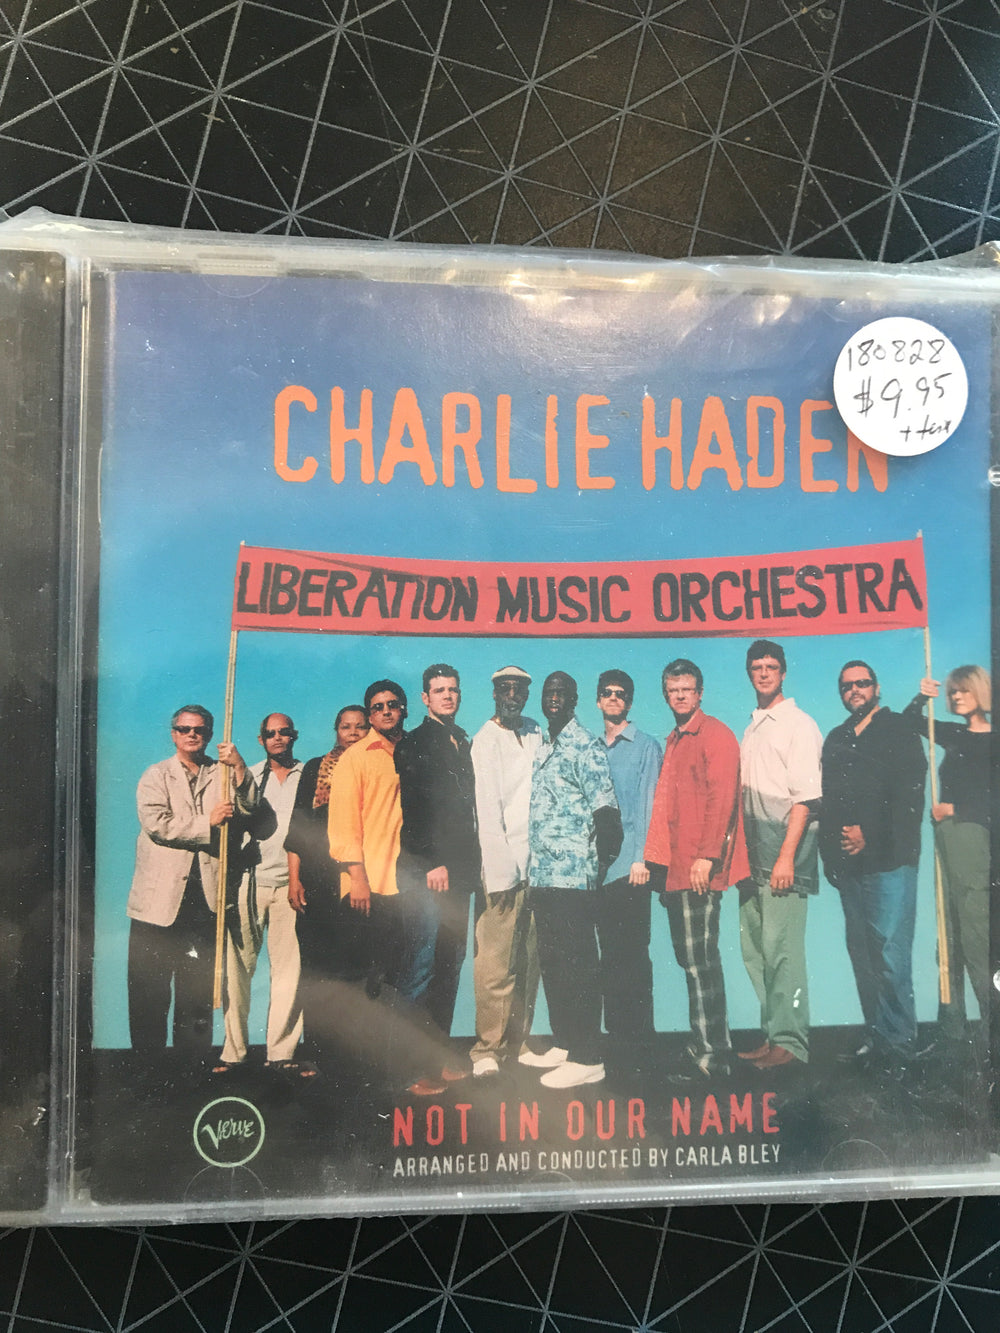 Charlie Haden Liberation Music Orchestra - Not In Our Name - Used CD